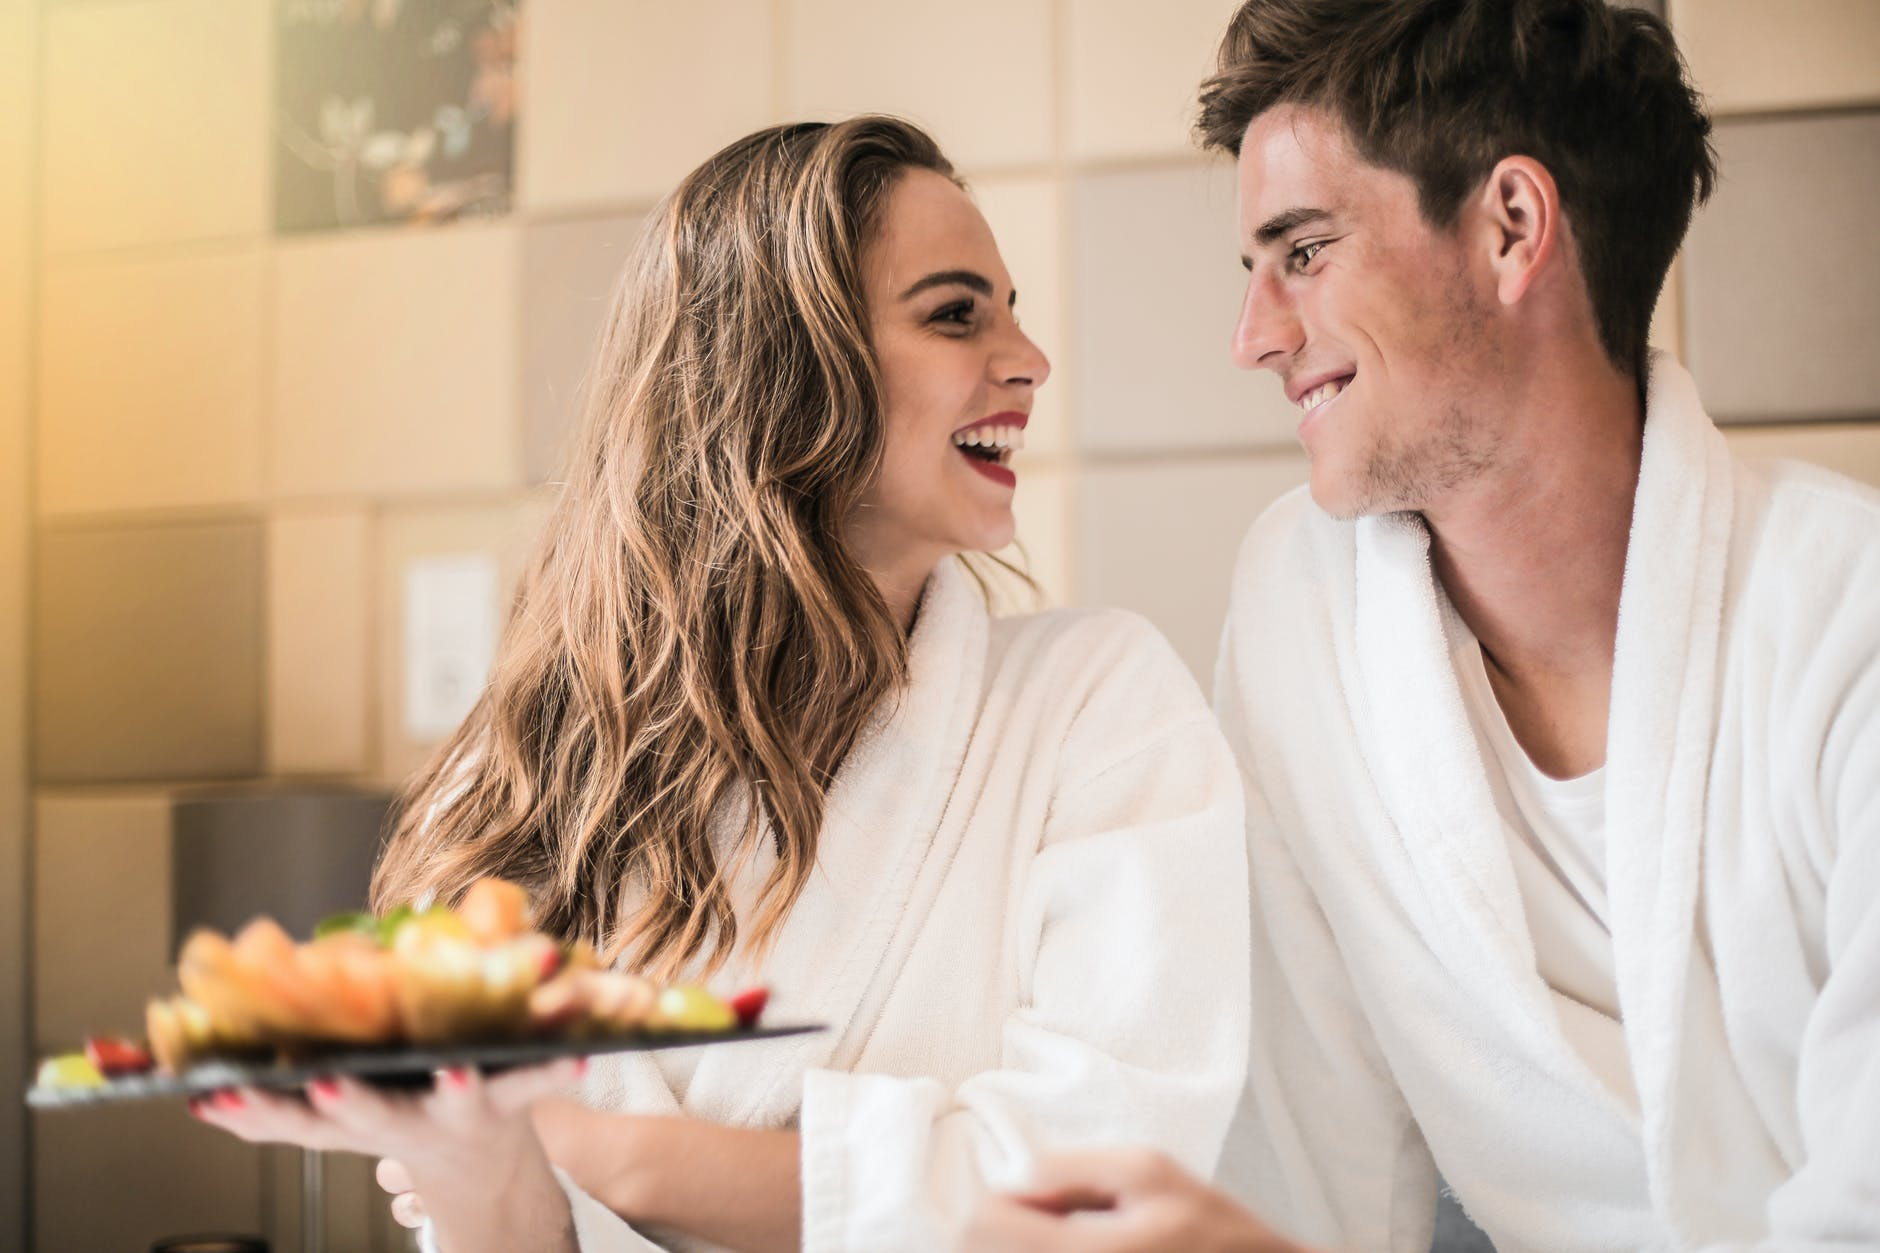 cook a romantic valentine's meal together